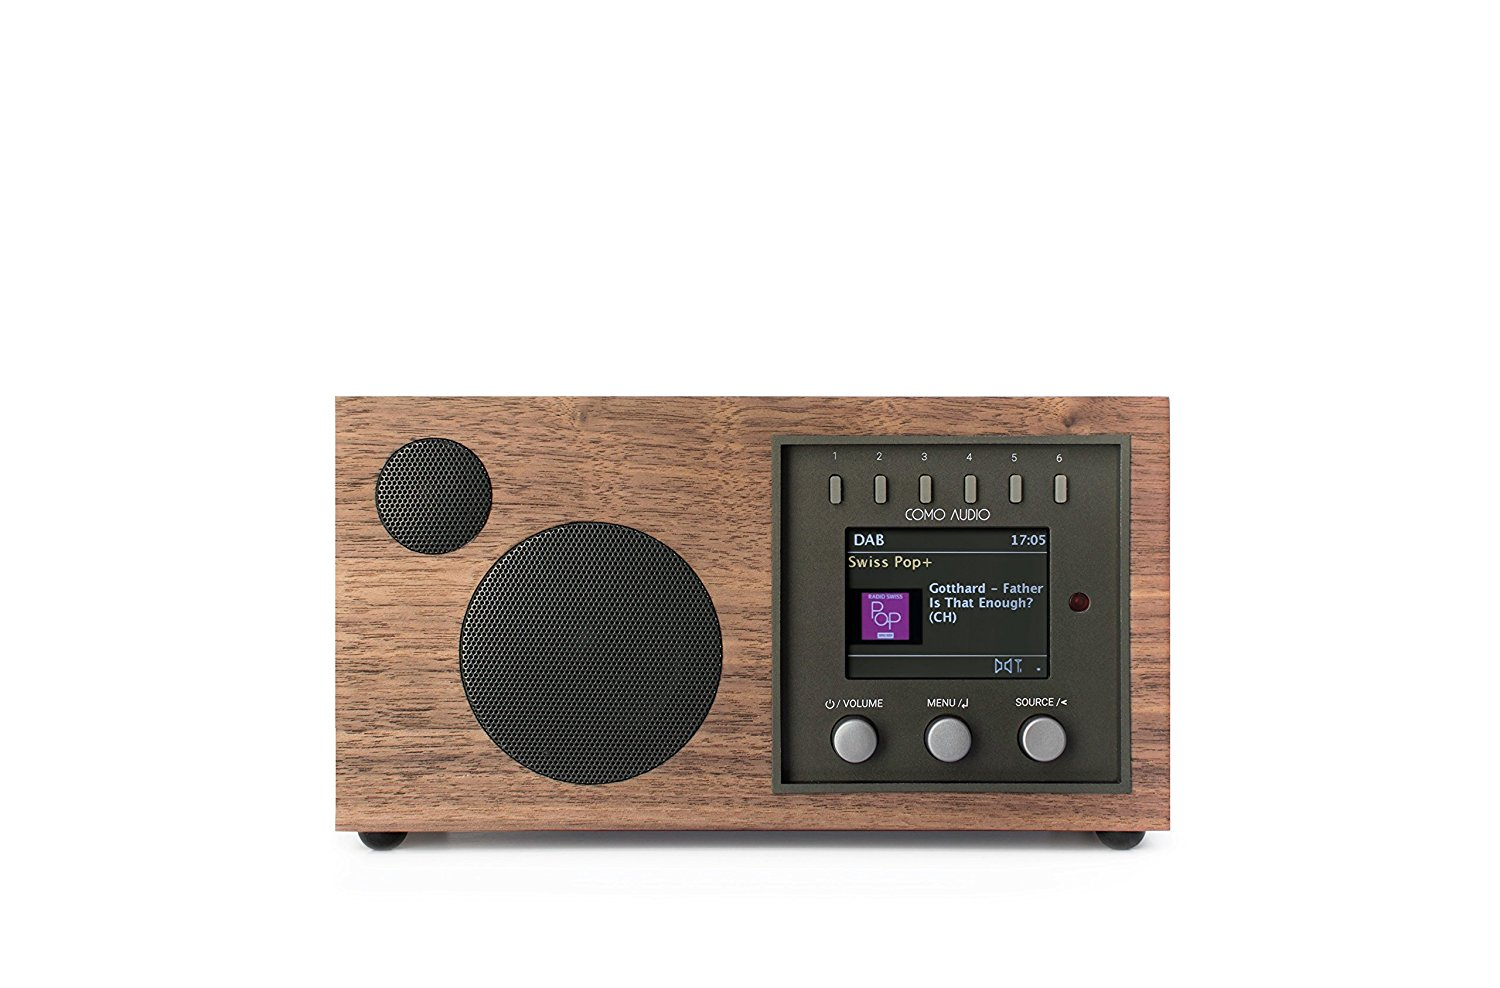 Tivoli Radio Designer Best Tabletop Radios For Retro Design Lovers